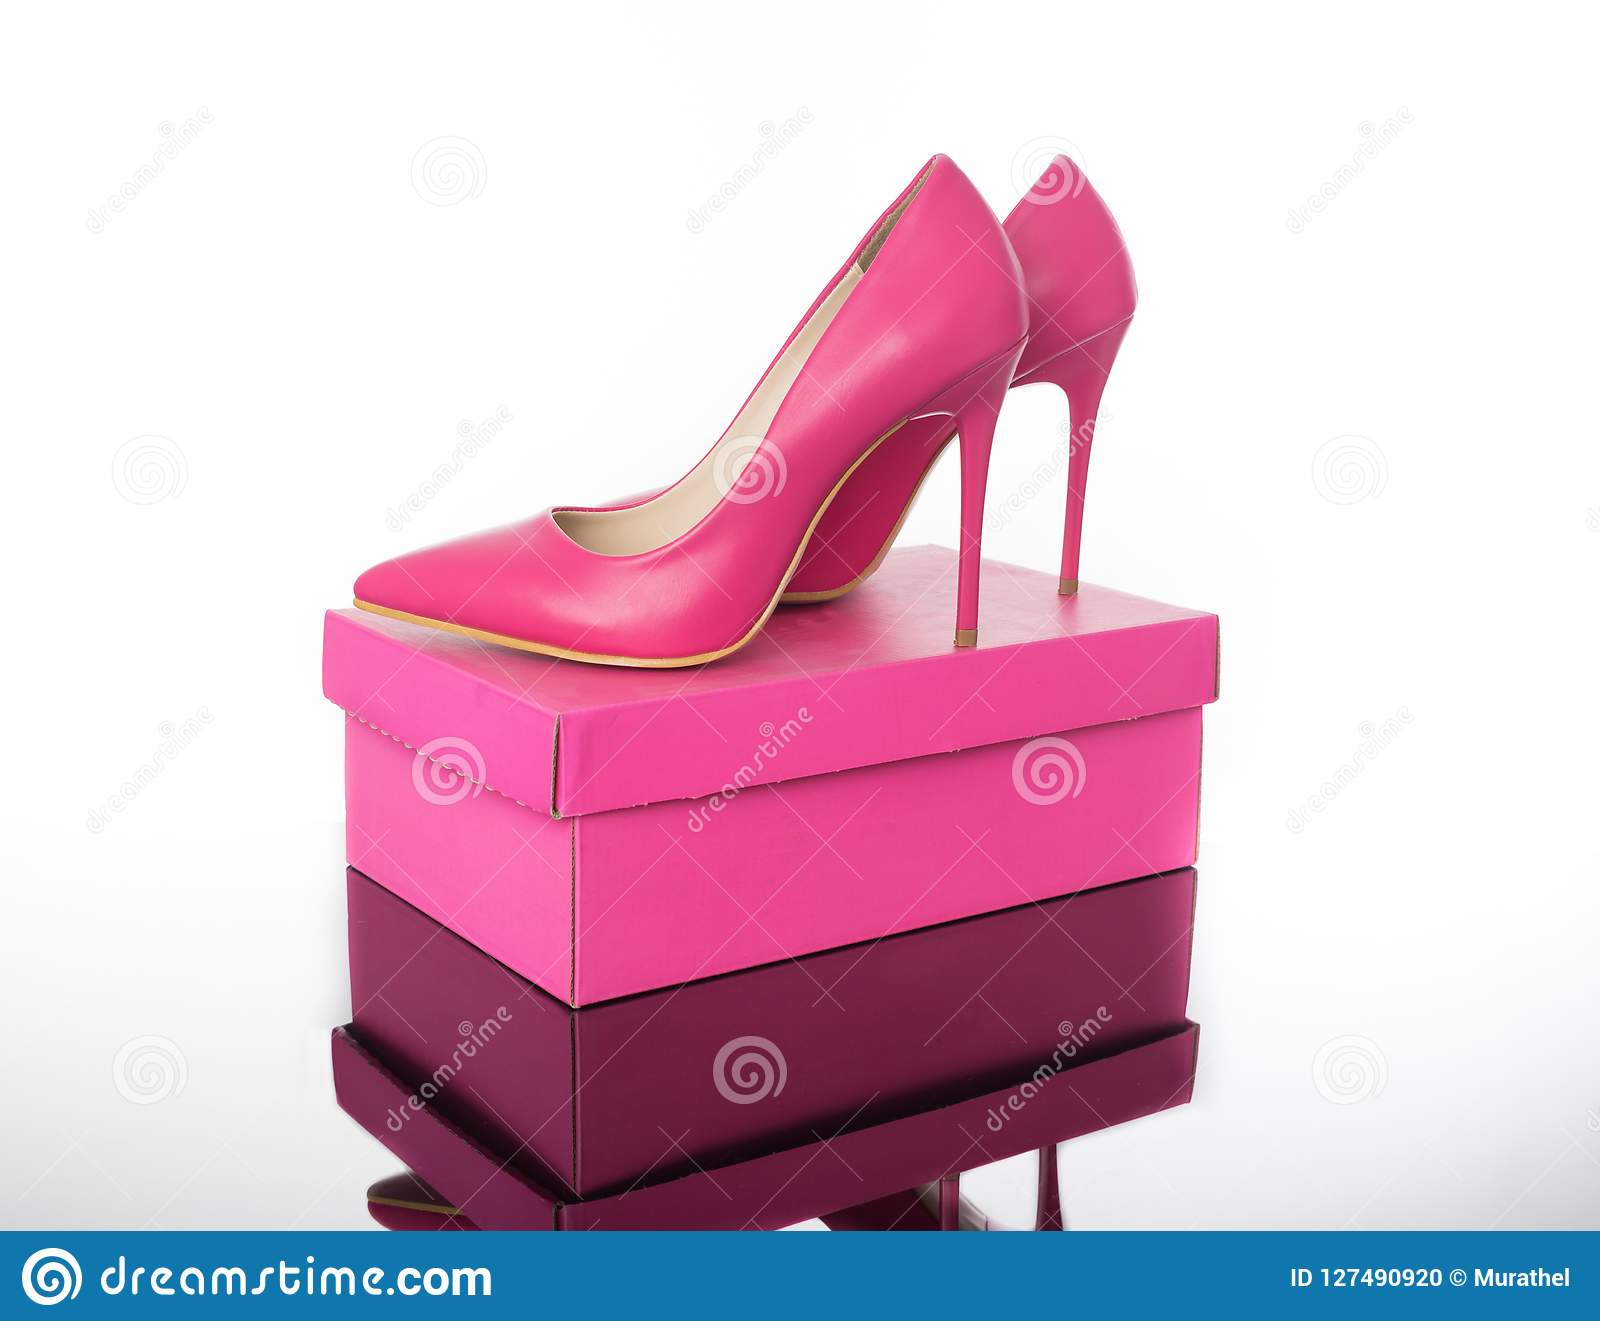 462aa8fa7cb Double Pink Pointed High Heels Women`s Shoe And Box Stock Photo ...